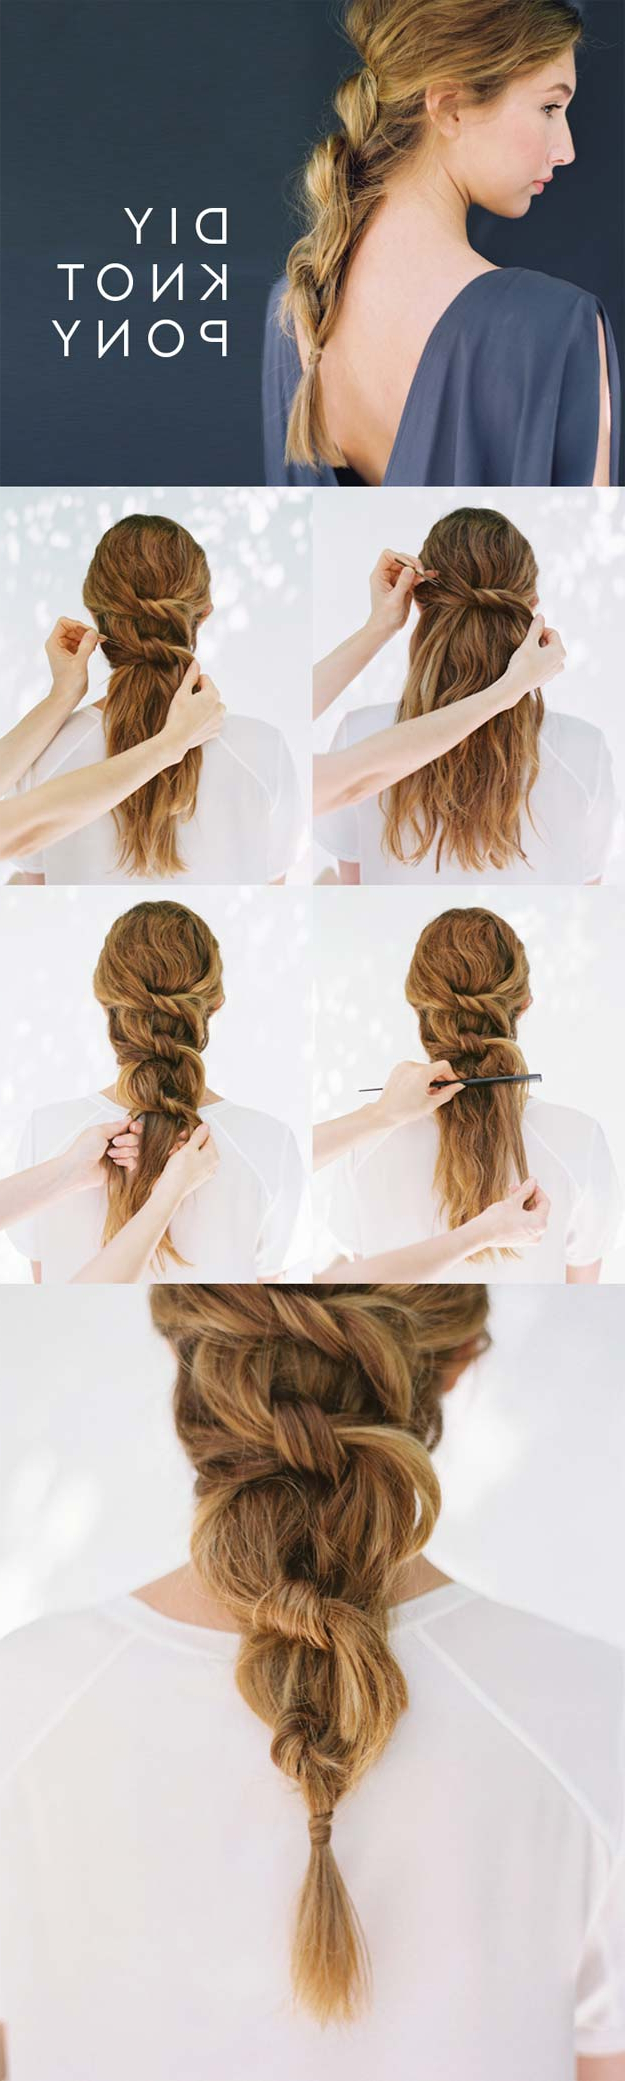 Favorite Medium Hairstyles For Women In Their 20S Inside 33 Best Hairstyles For Your 20S – The Goddess (View 12 of 20)